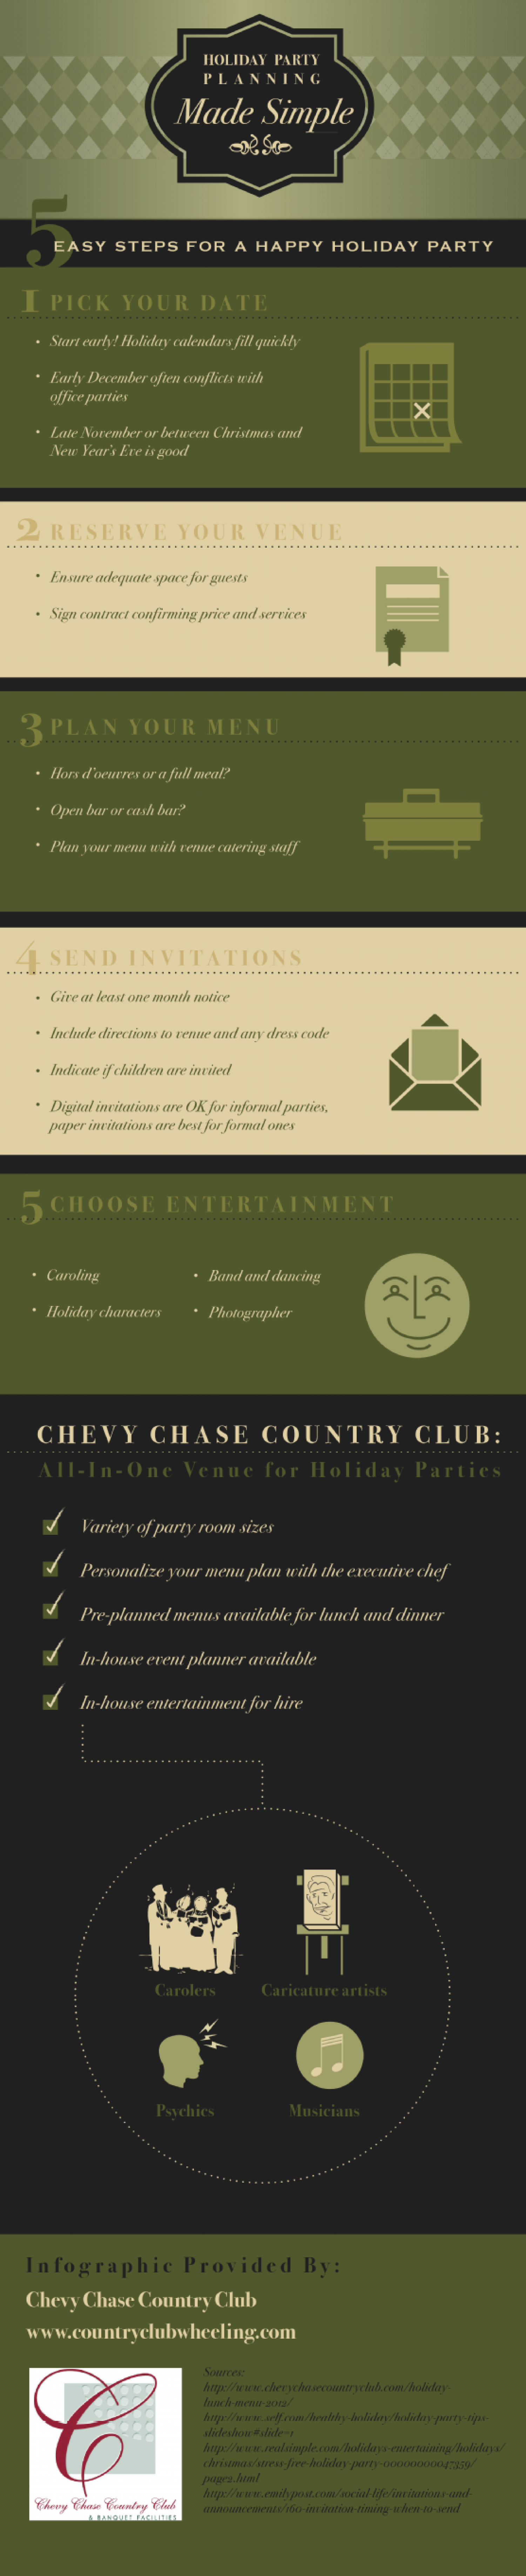 Holiday Party Planning Made Simple Infographic